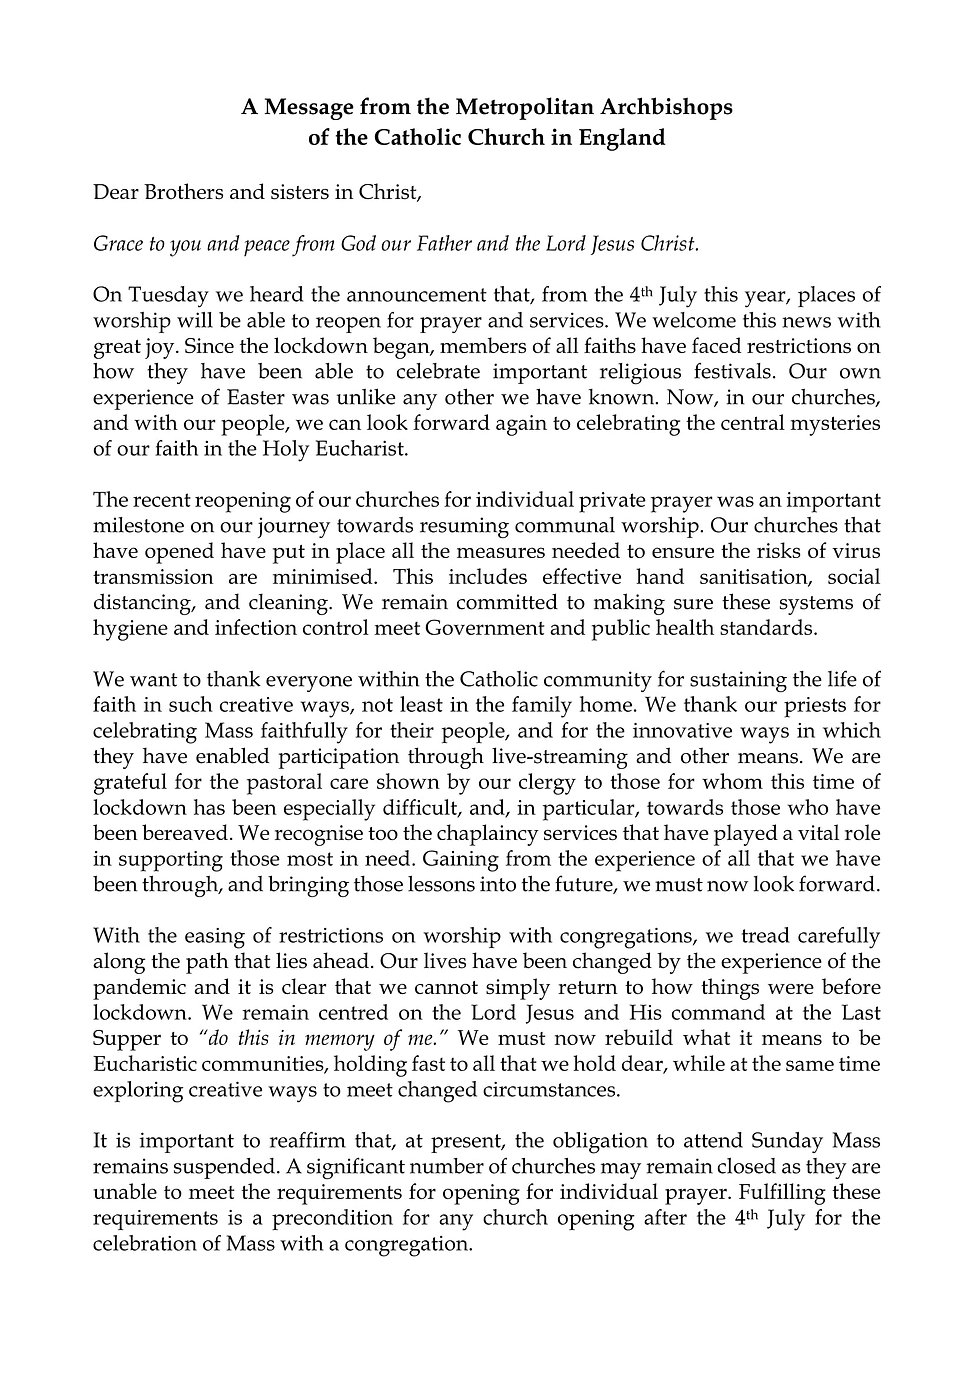 Archbishops' Letter Re-opening of  churc